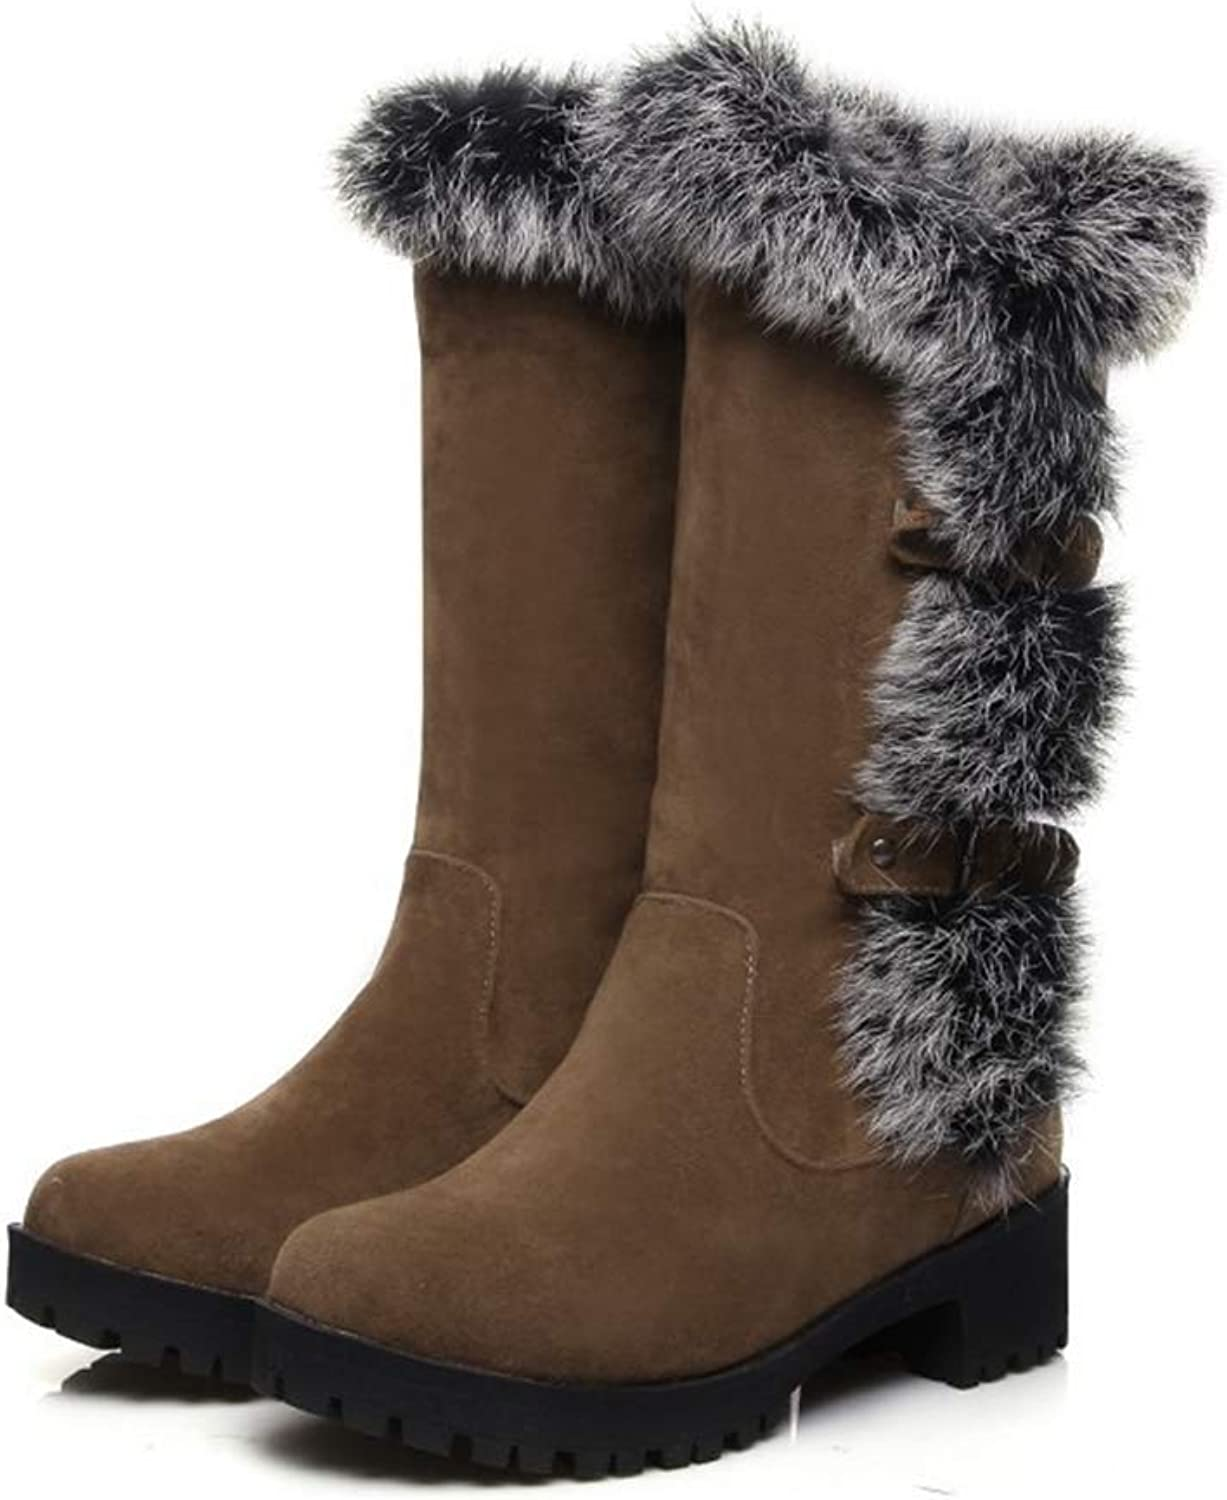 Beautiful - Fashion Women's Mid Calf Boots Buckle Strap Mid Heel Platform Round Toe Slip-On Fashion Warm Fur Lined Winter Snow Boots